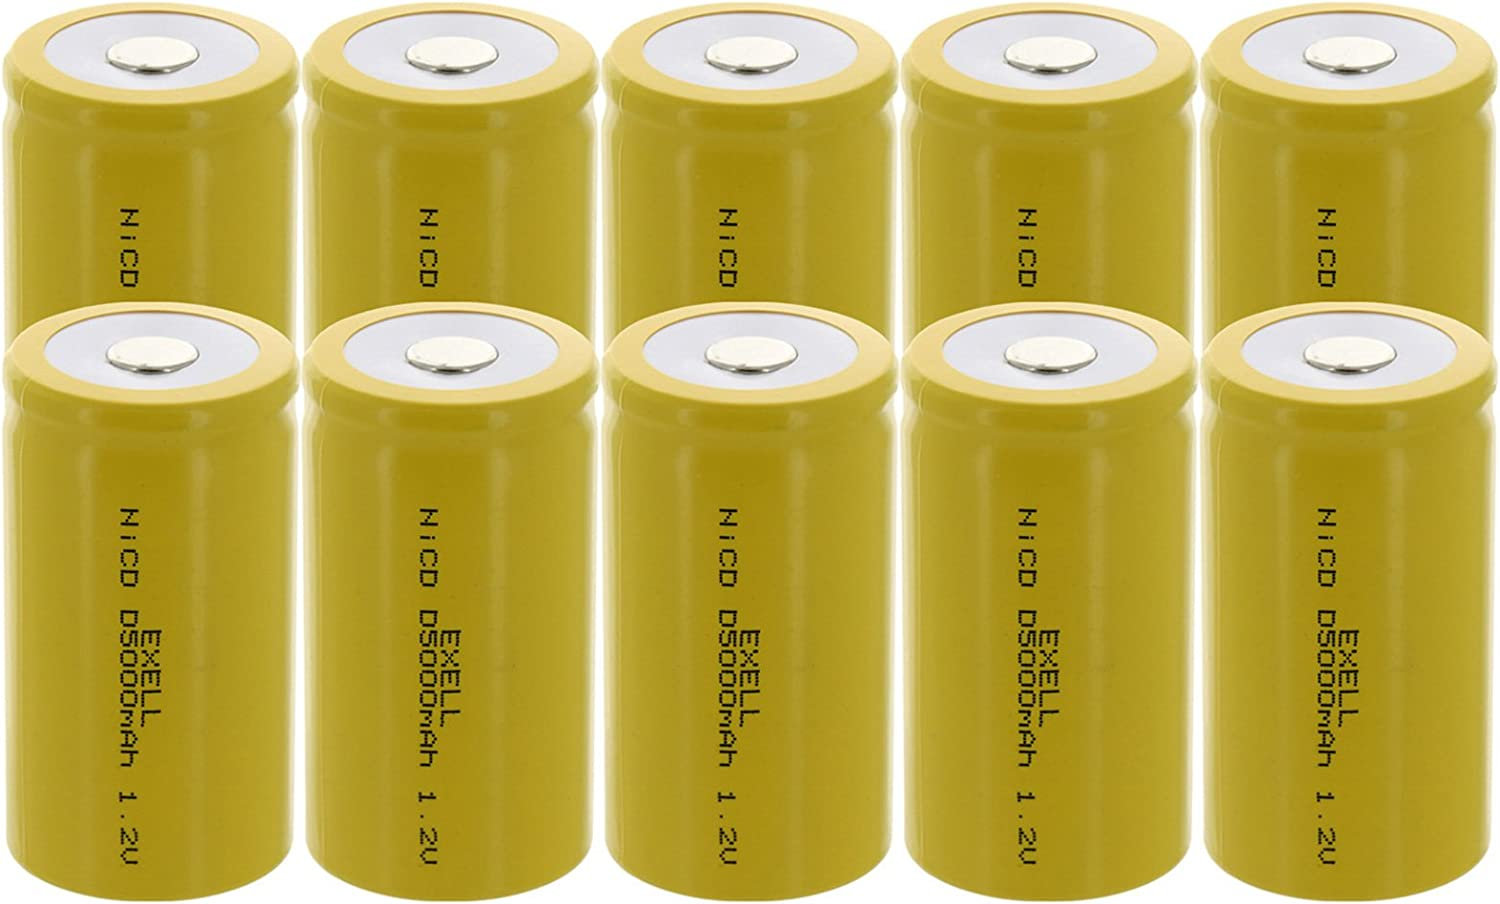 10X Exell D Größe 1.2V 5000Mah Nicd Wohnung obere Rechargeable Batteries für Meters, Radios, Hybrid Automobiles, hoch Power Static Applications (Telecoms, Ups und Smart Grid), Radio Controlled Devices